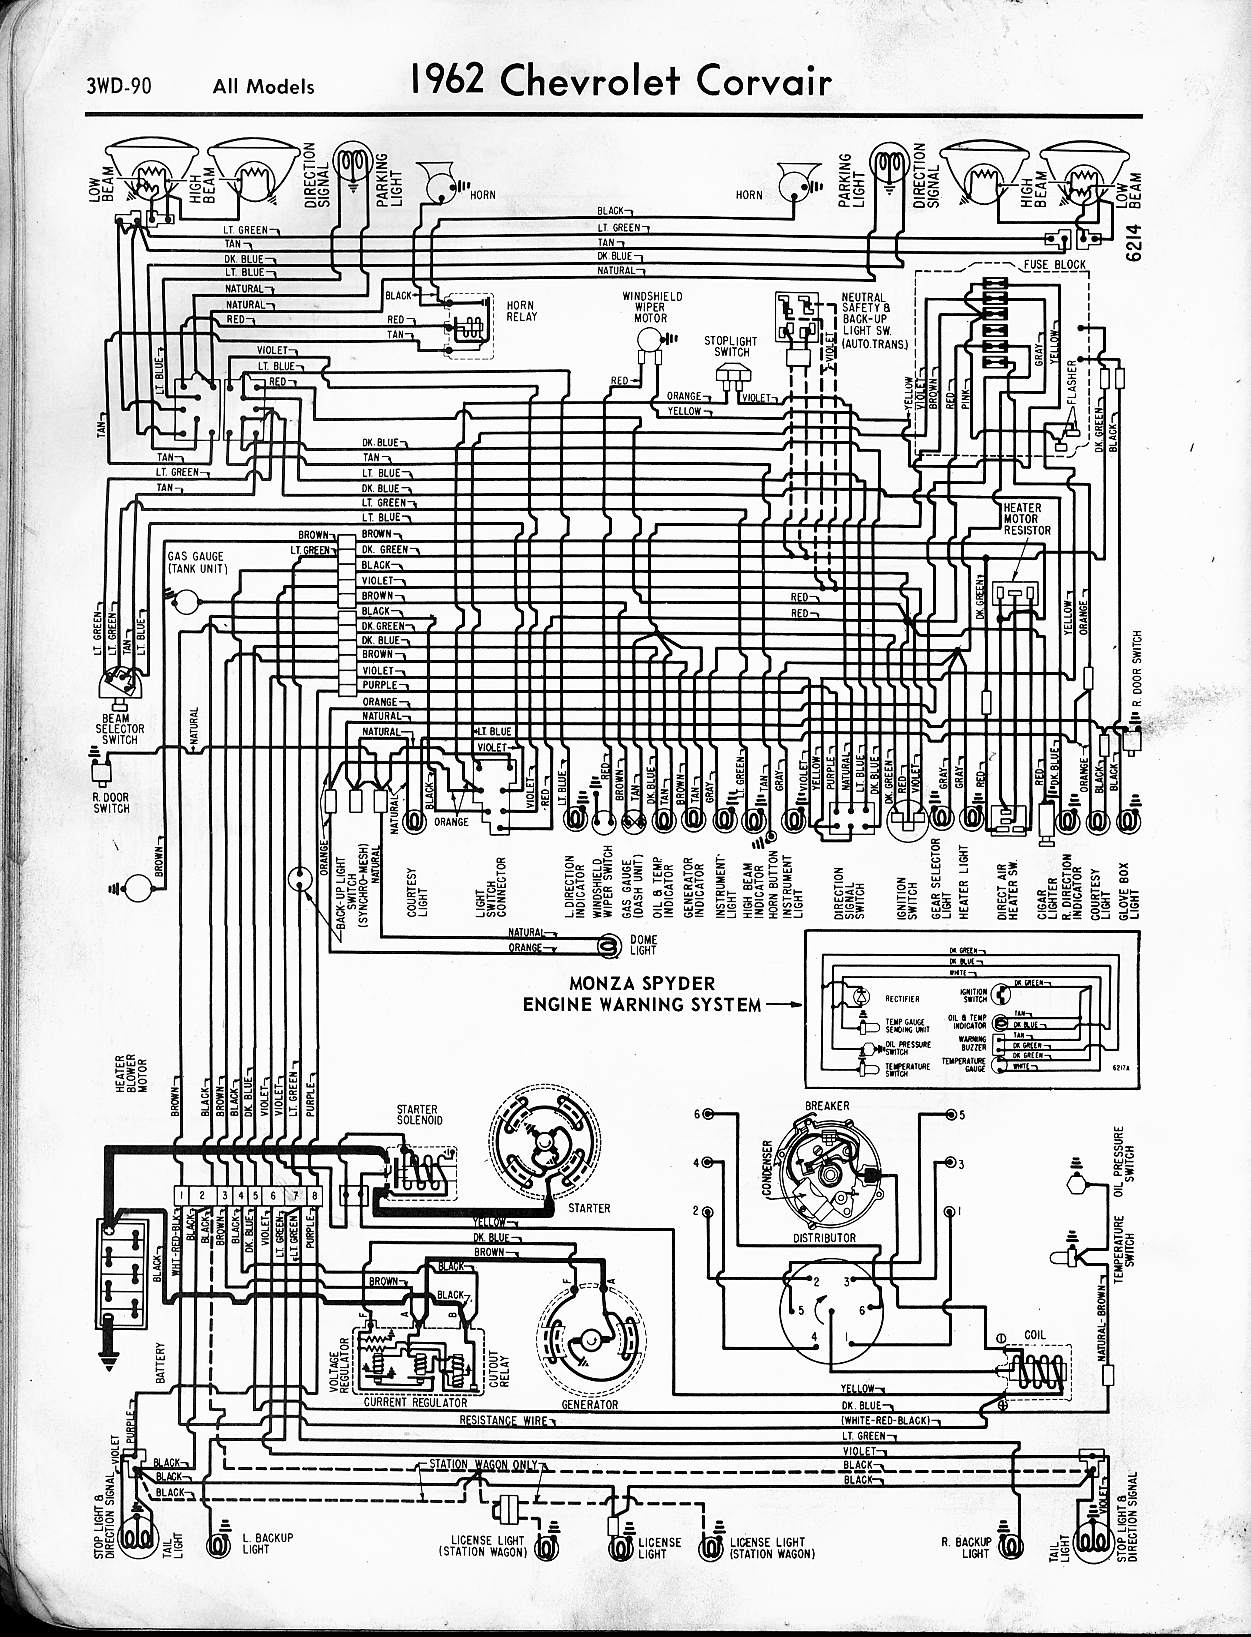 62 Impala Wiring Diagrams 1961 Corvair Diagram 57 65 Chevy 1962 Dash